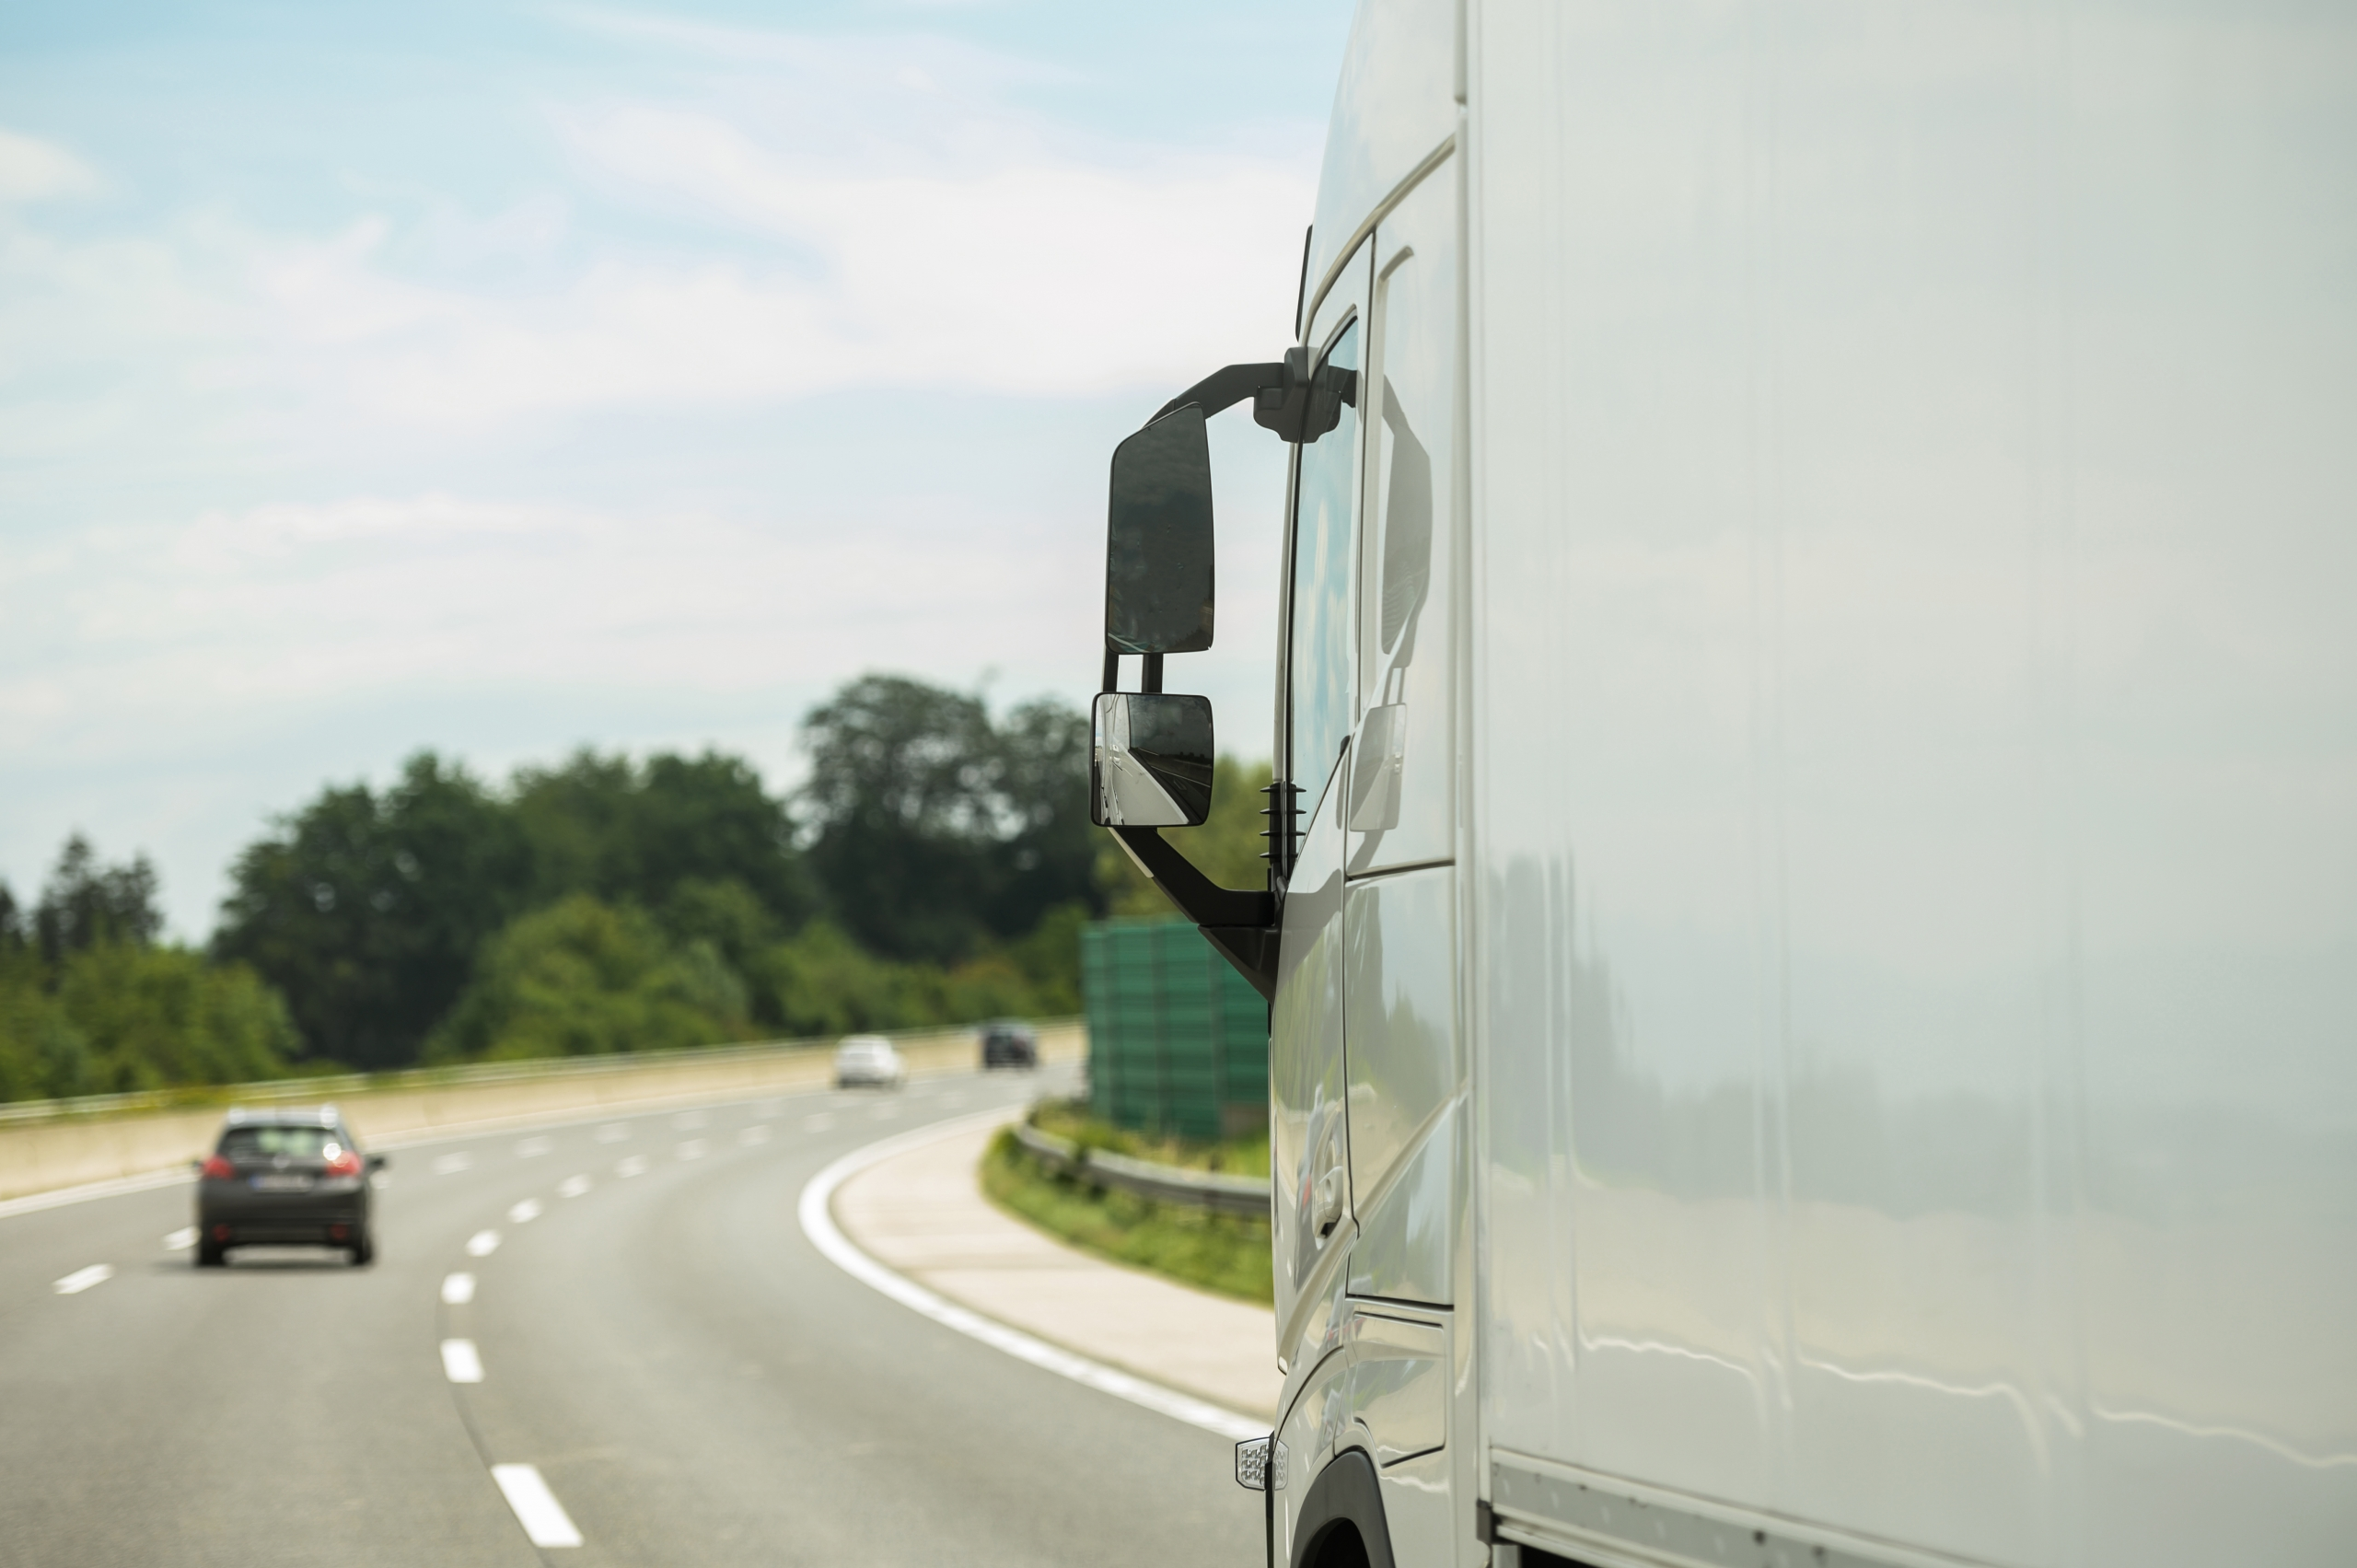 Modern Semi Truck on a Highway Right Before Strong Right Turn Curve. Transportation Industry.